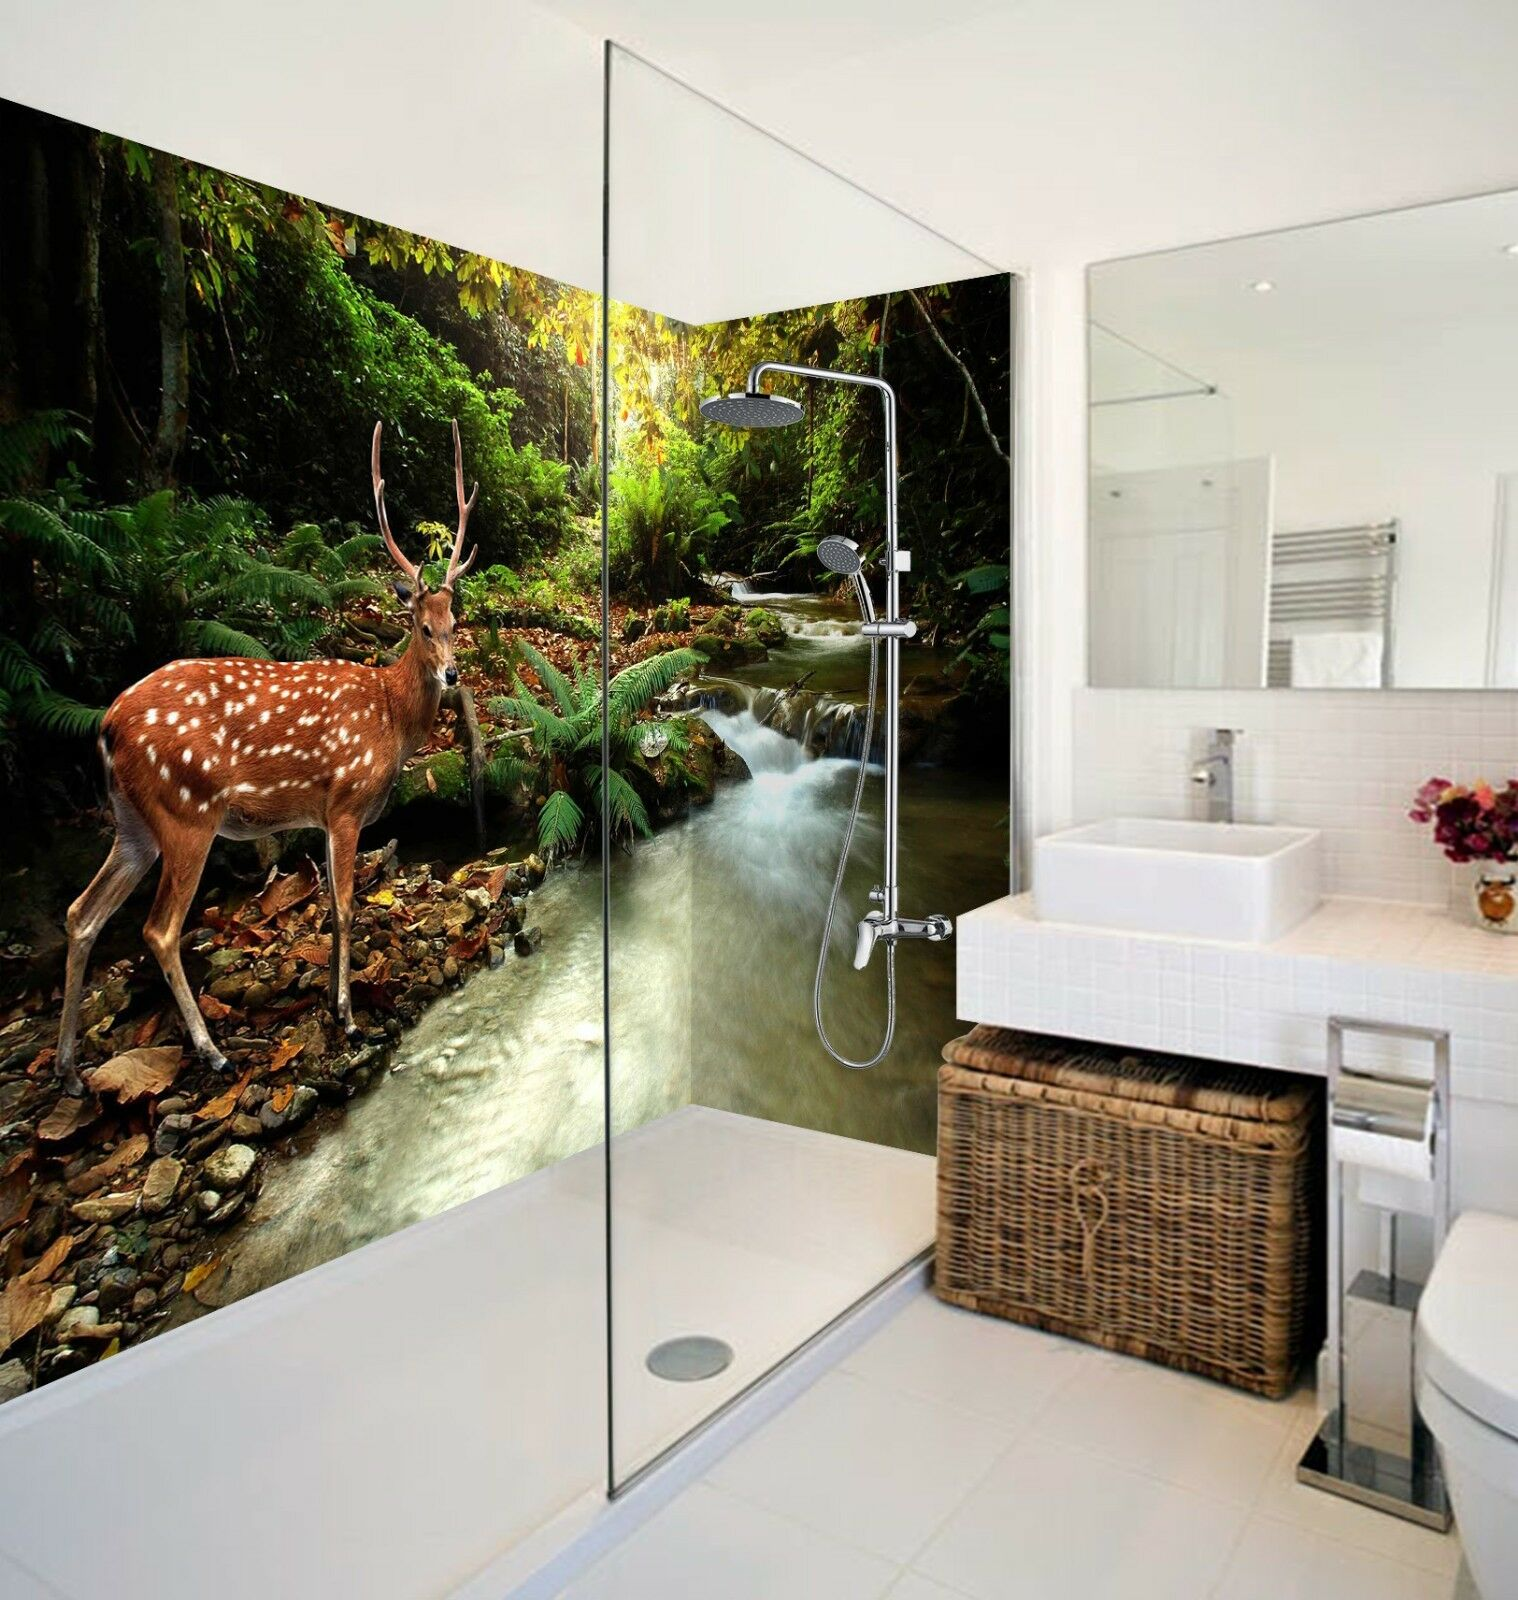 3D Sika Deer Forest 43 WallPaper Bathroom Print Decal Wall Deco AJ WALLPAPER AU